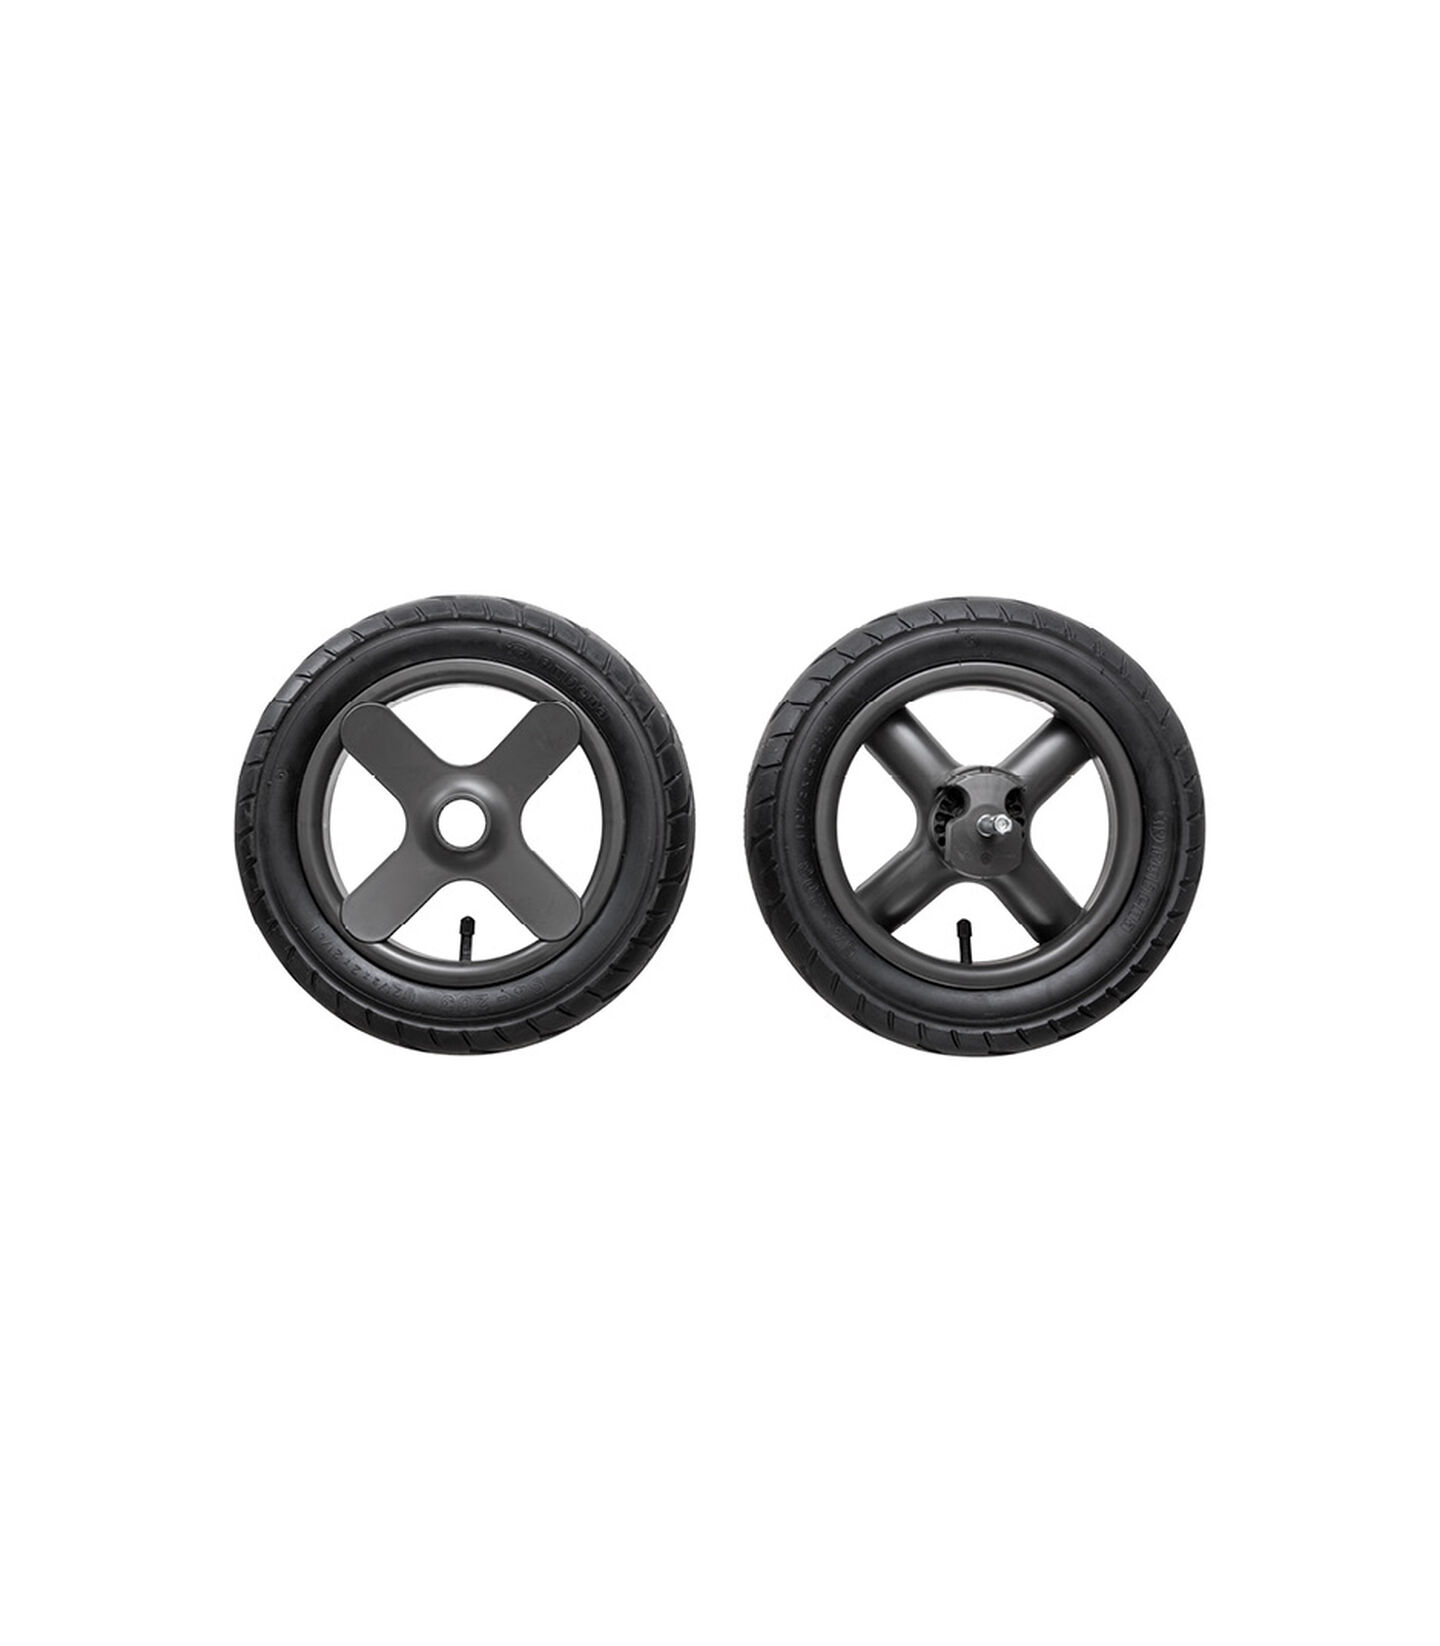 Stokke® Trailz Rear wheel complete set, , mainview view 2